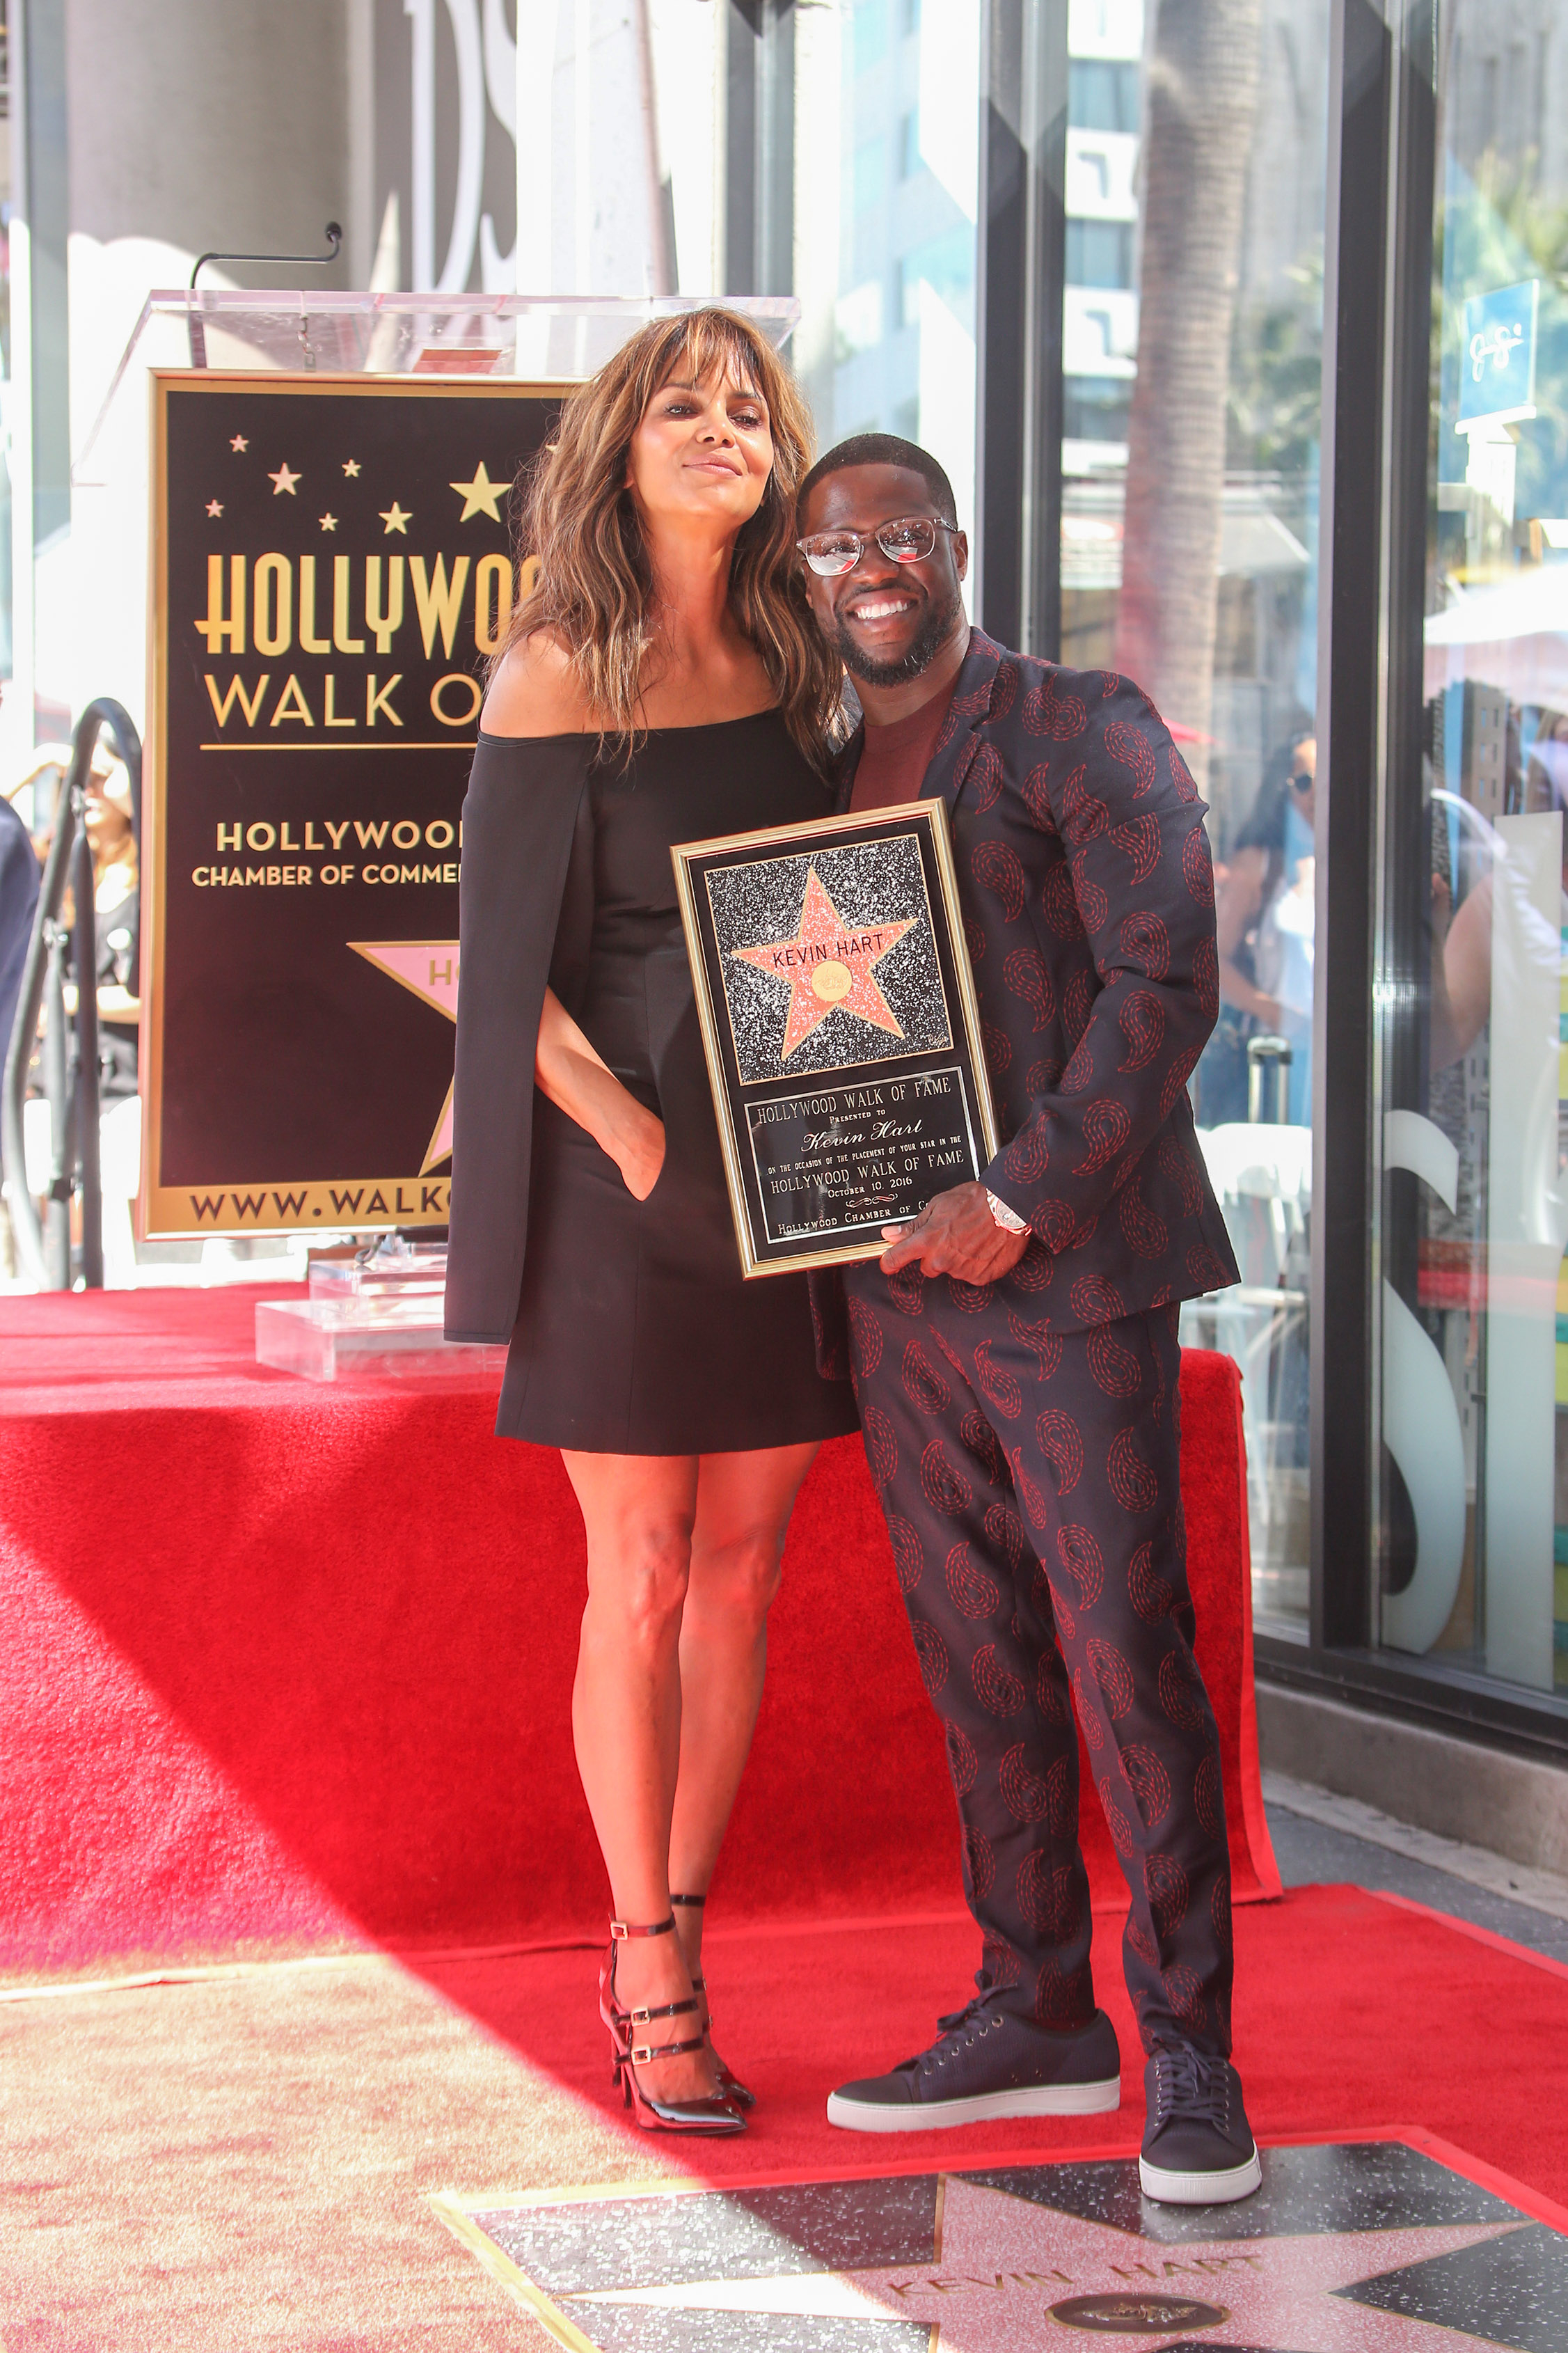 10/10/2016 - Halle Berry, Kevin Hart - Kevin Hart Honored with a Star on the Hollywood Walk of Fame - Hollywood Walk of Fame - Hollywood, CA, USA - Keywords: Vertical, American actor, comedian, writer, producer, film industry, movie, television, red carpet event, Ceremony, Person, People, Celebrity, Celebrities, WOF, HWOF, Photography, Photograph, Candid, Respect, Arts Culture and Entertainment, Attending, Topix, Bestof, Los Angeles, California Orientation: Portrait Face Count: 1 - False - Photo Credit: PRPhotos.com - Contact (1-866-551-7827) - Portrait Face Count: 1